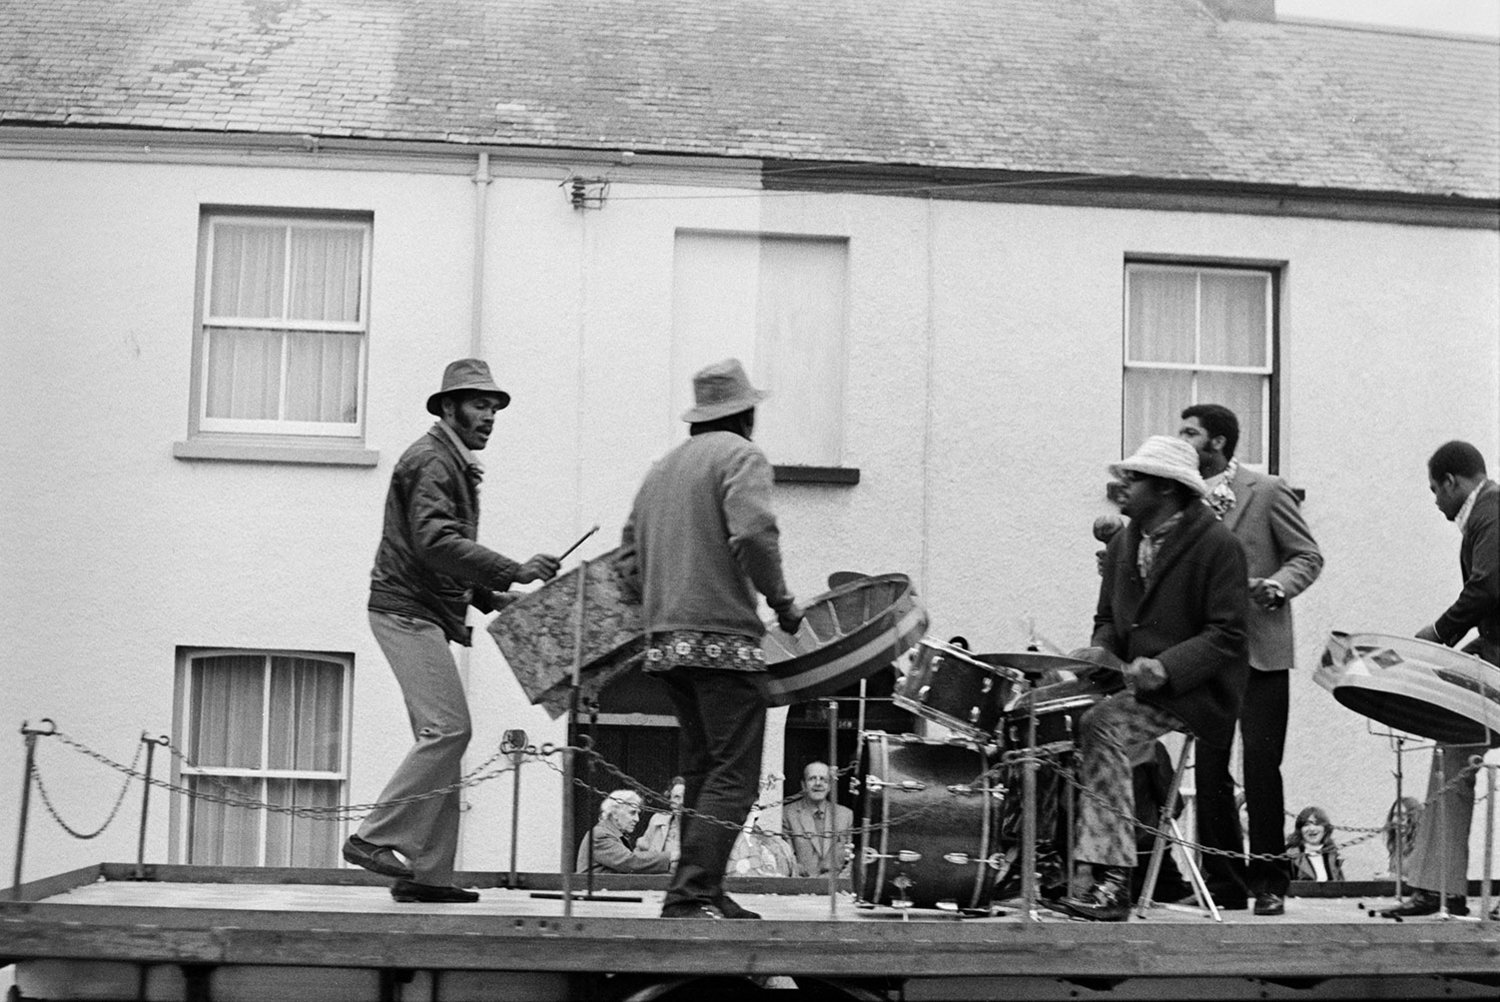 Musicians, carnival. Documentary photograph by Roger Deakins for the Beaford Archive © Beaford Arts